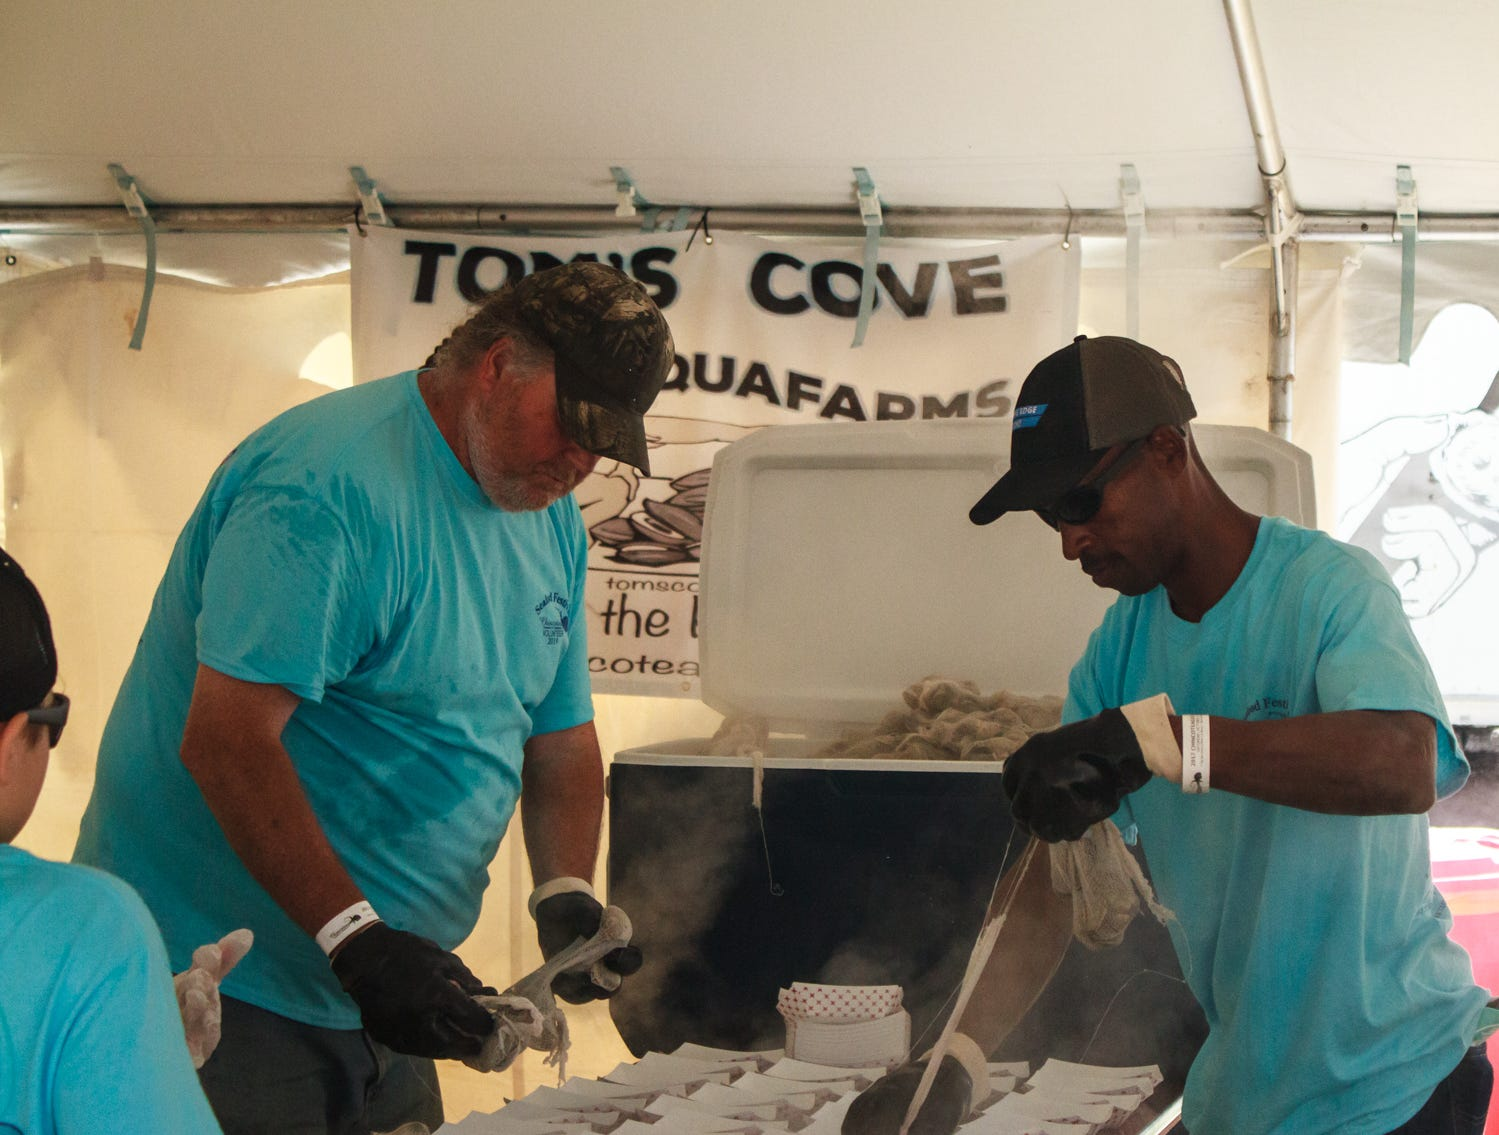 Members of Tom's Cove Aquaforms prepare clams for festival attendees on Saturday, May 4, 2019 at the Chincoteague Seafood Festival in Chincoteague, Virginia.